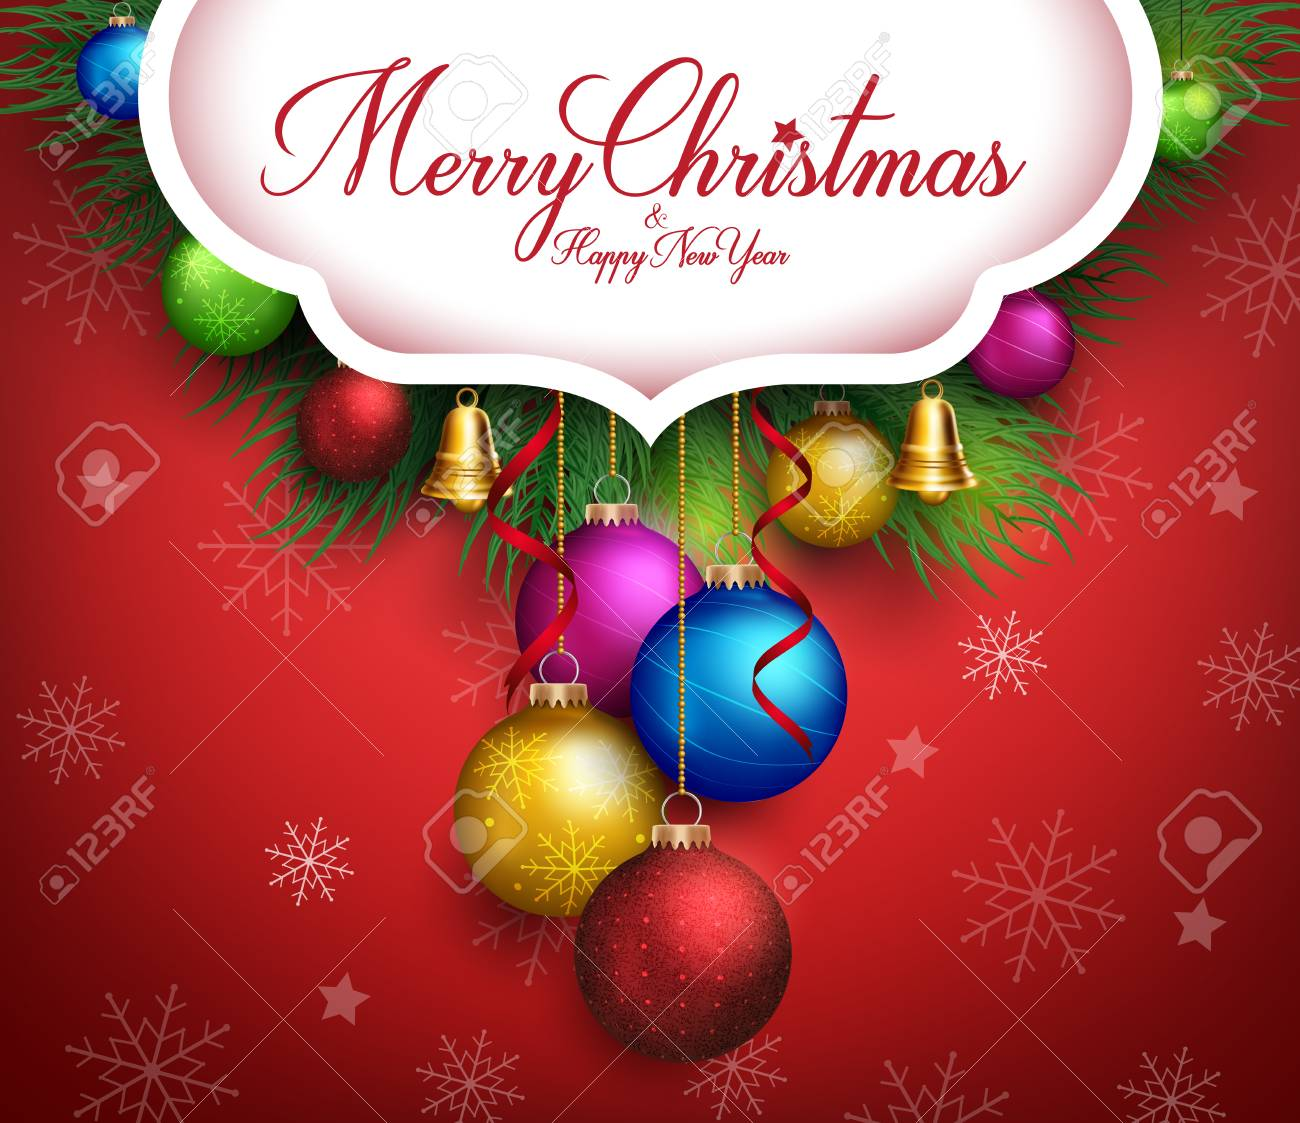 3d Realistic Merry Christmas Greetings Text With Hanging Colorful